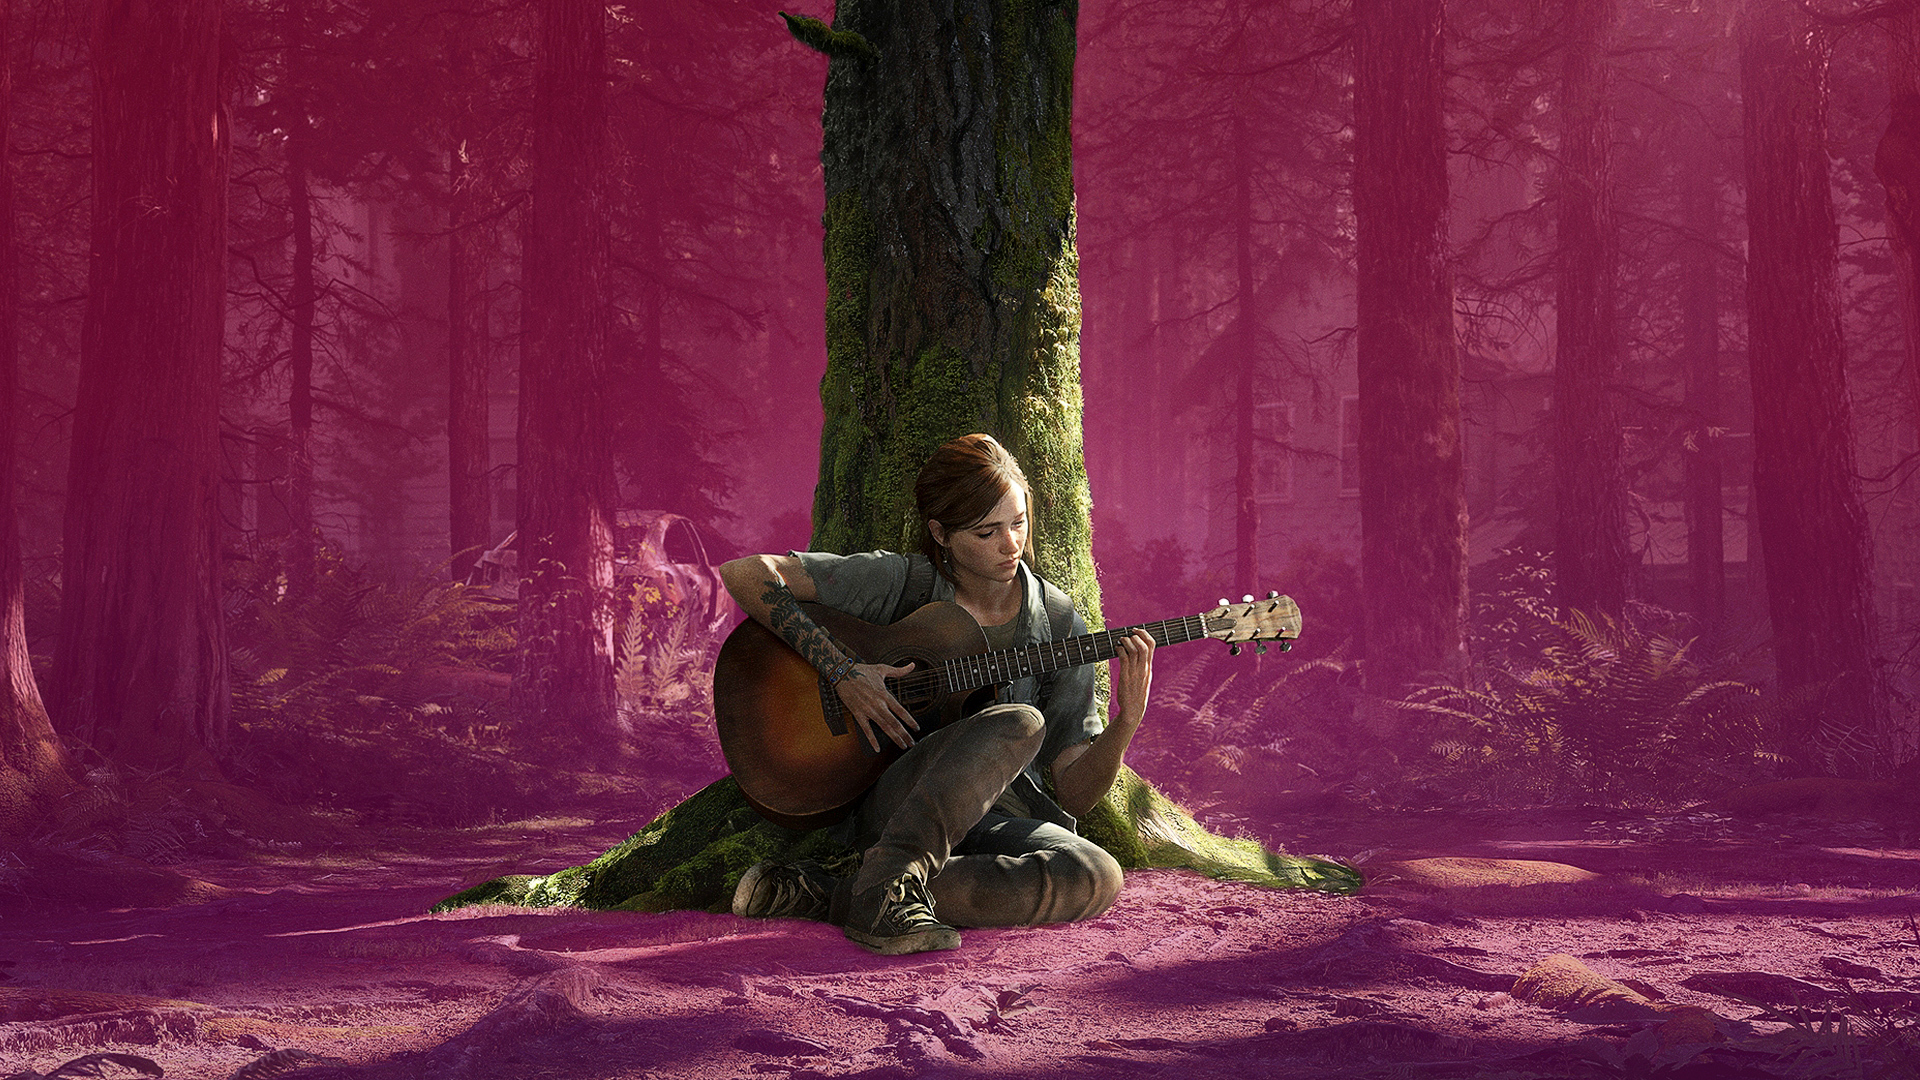 Young woman plays guitar leaning against a tree in an overgrown forest